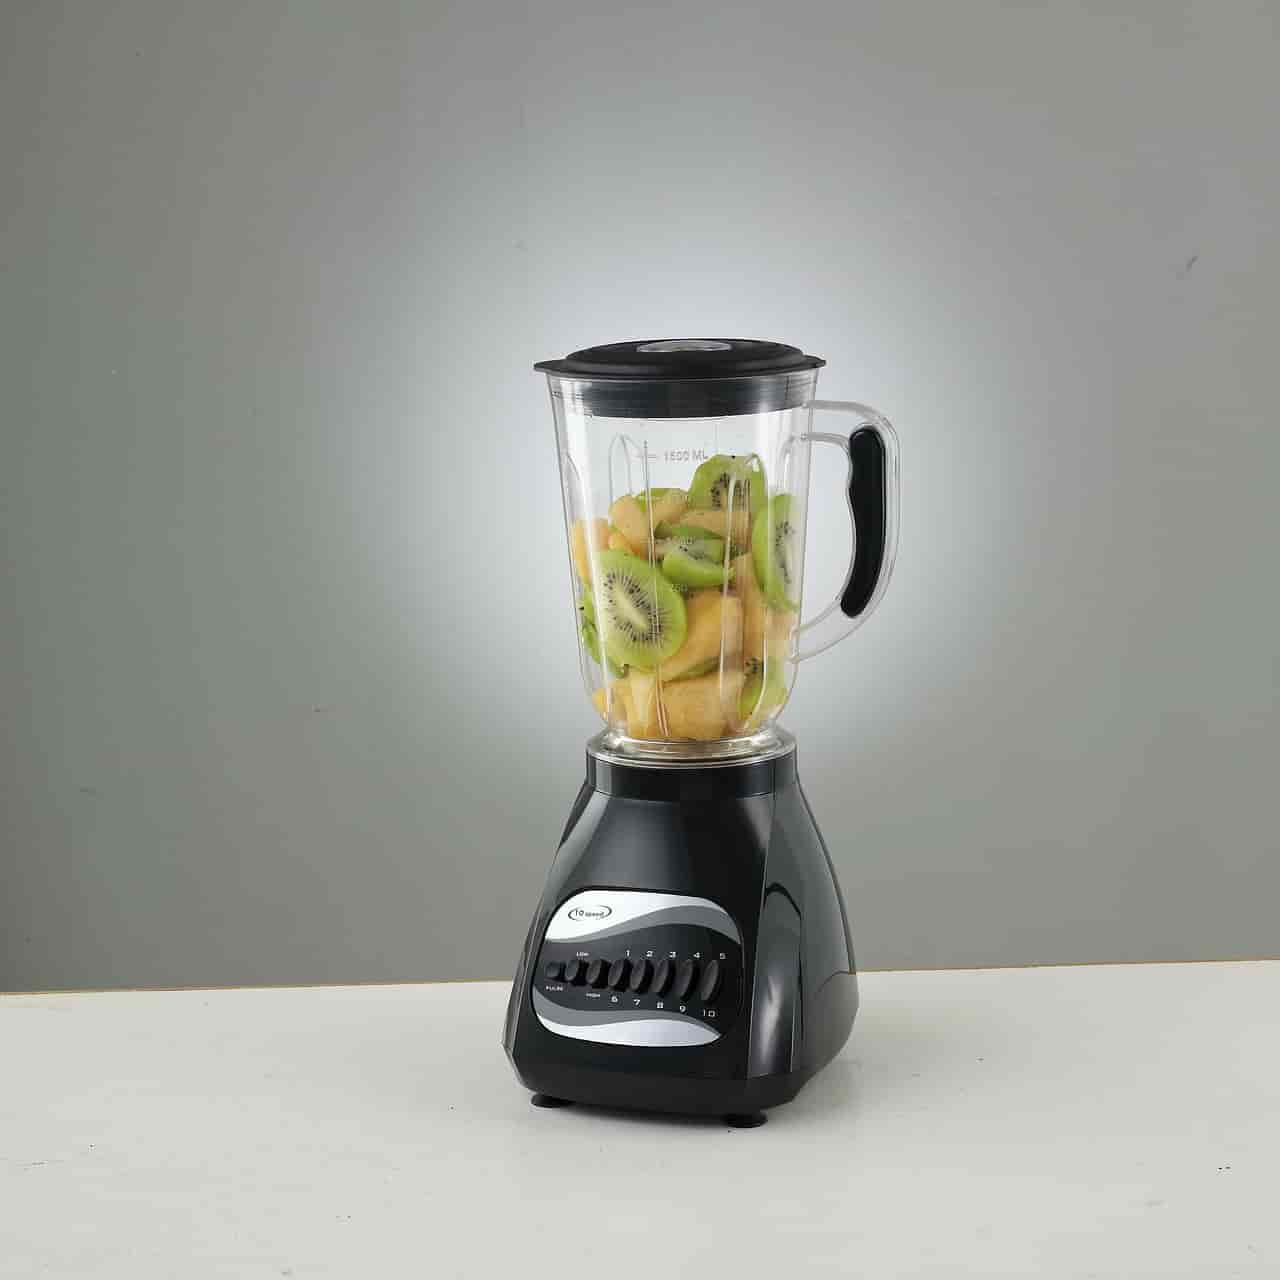 Mixer Grinder for Indian Cooking-min